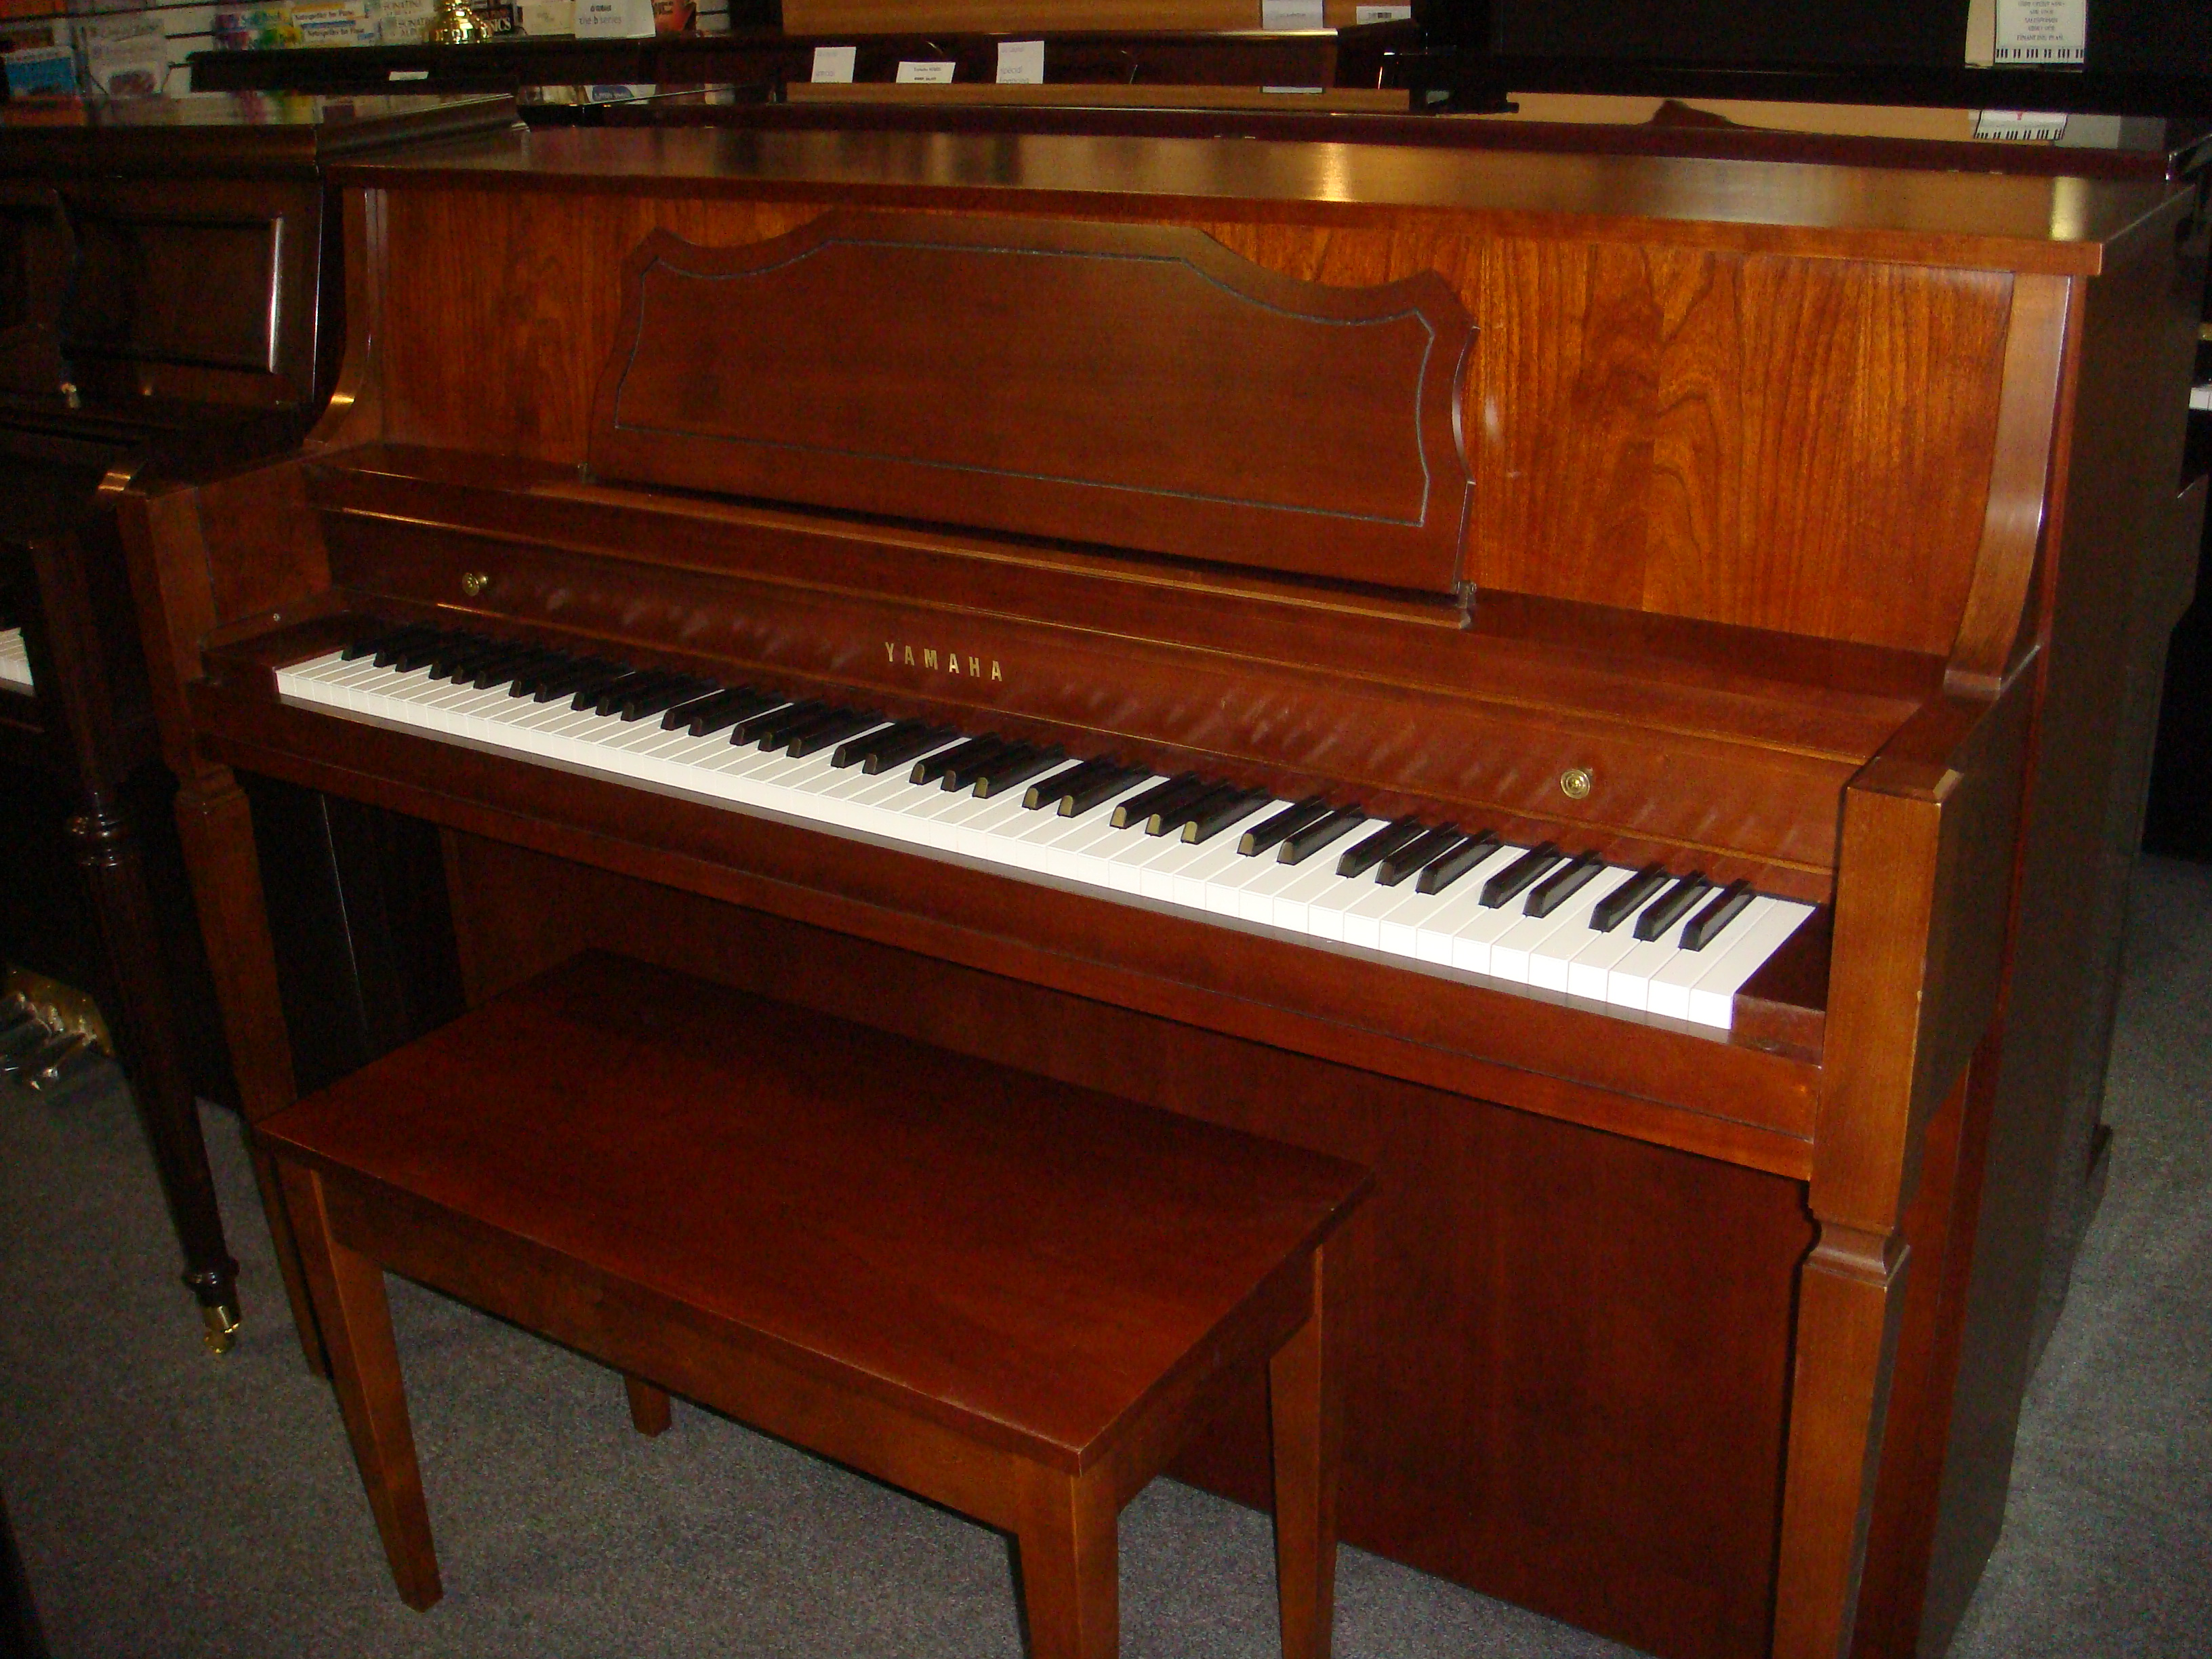 Used console yamaha m450 piano for sale nj for Yamaha console piano prices